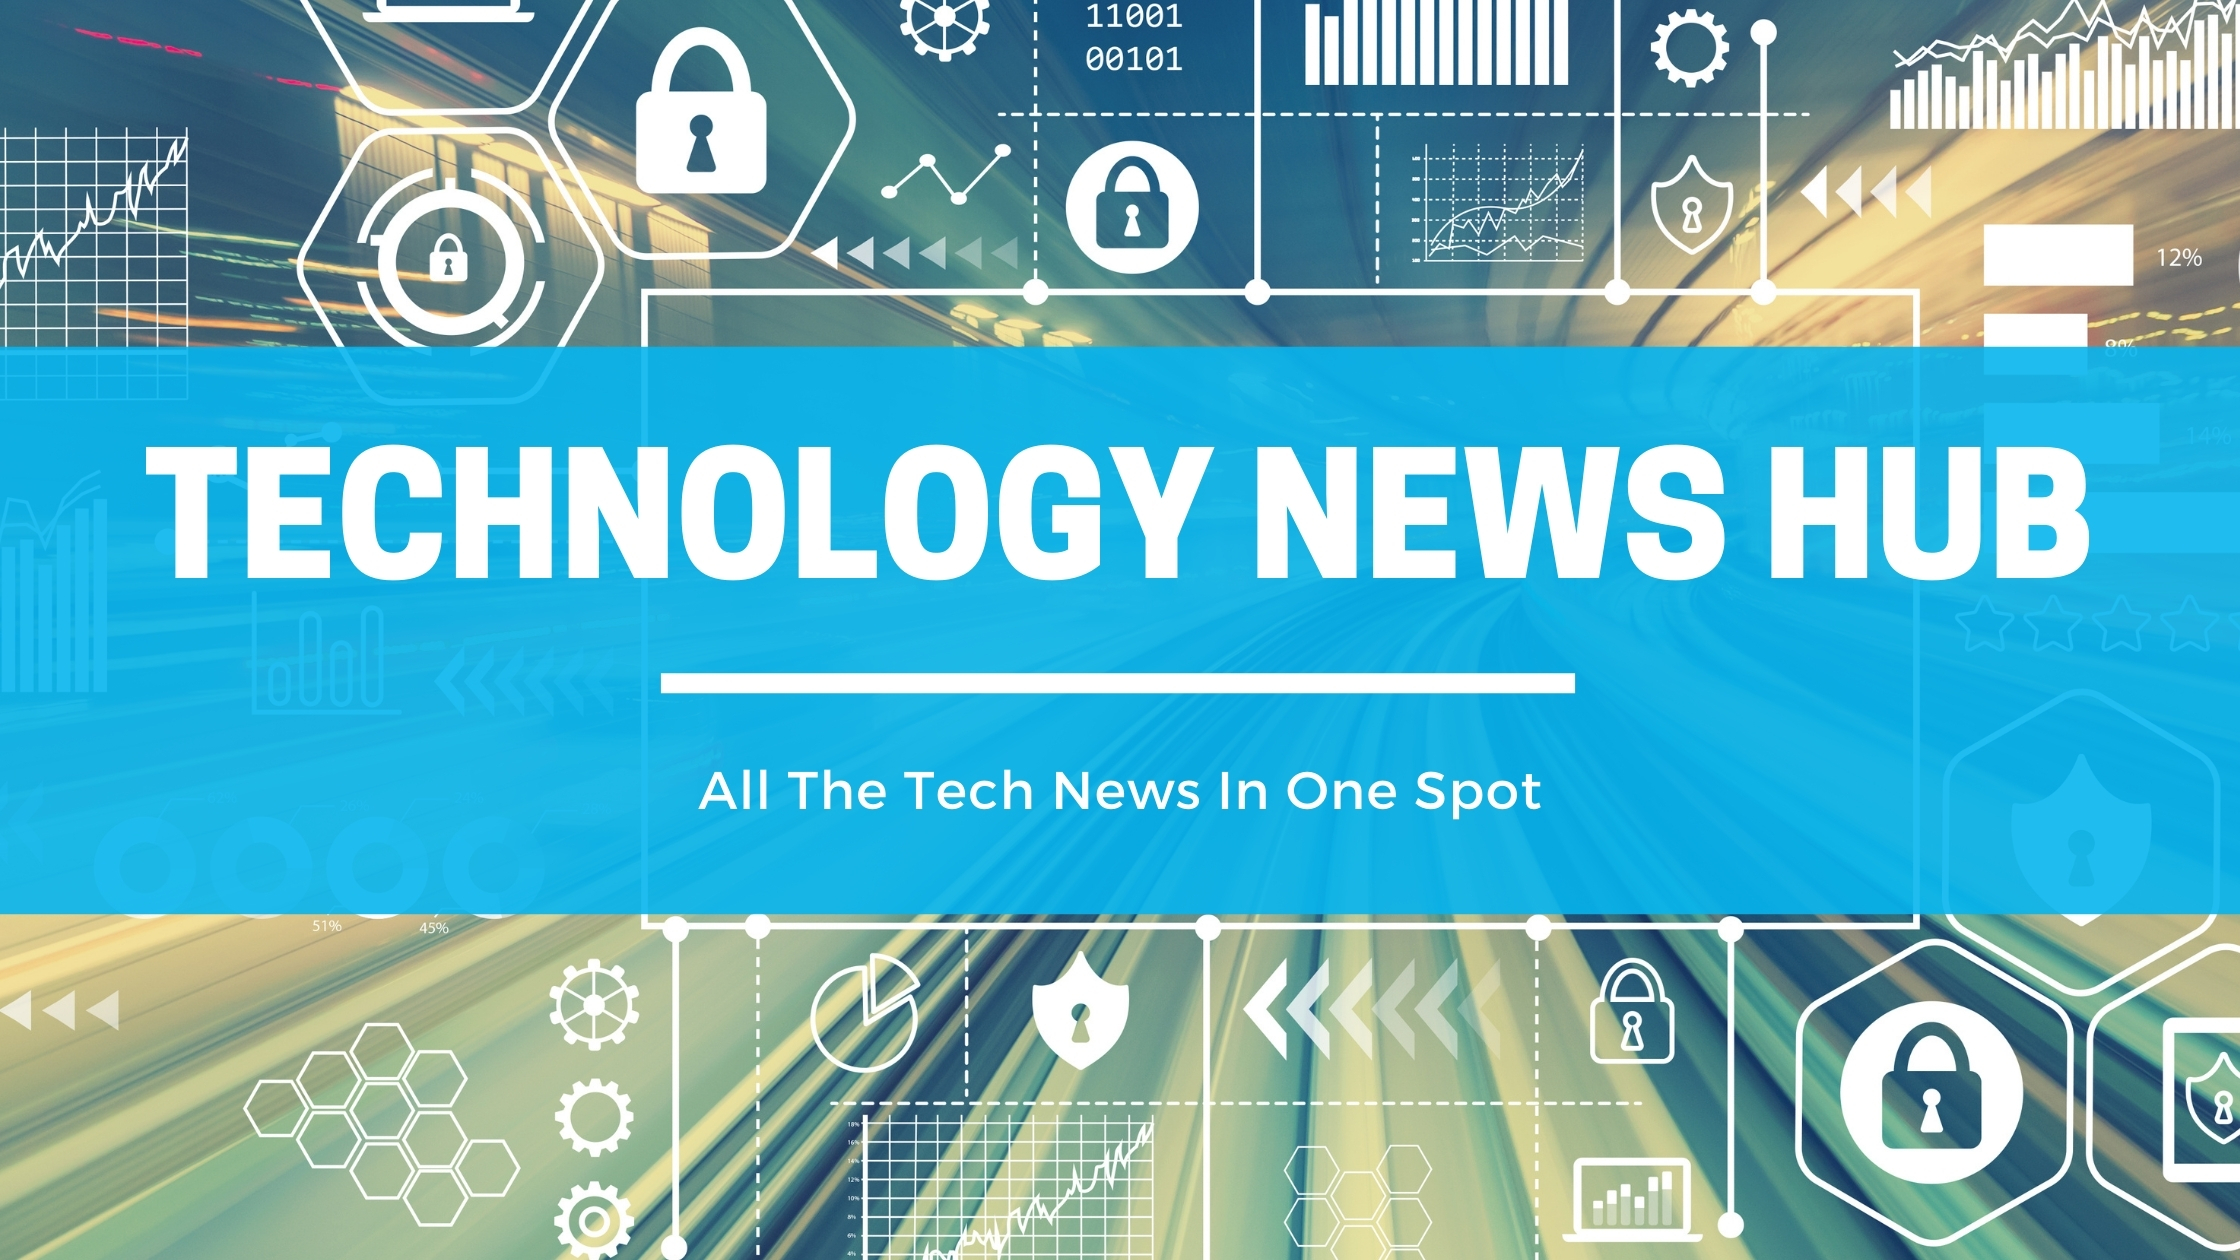 Technology News Hub - All The Tech News In One Spot